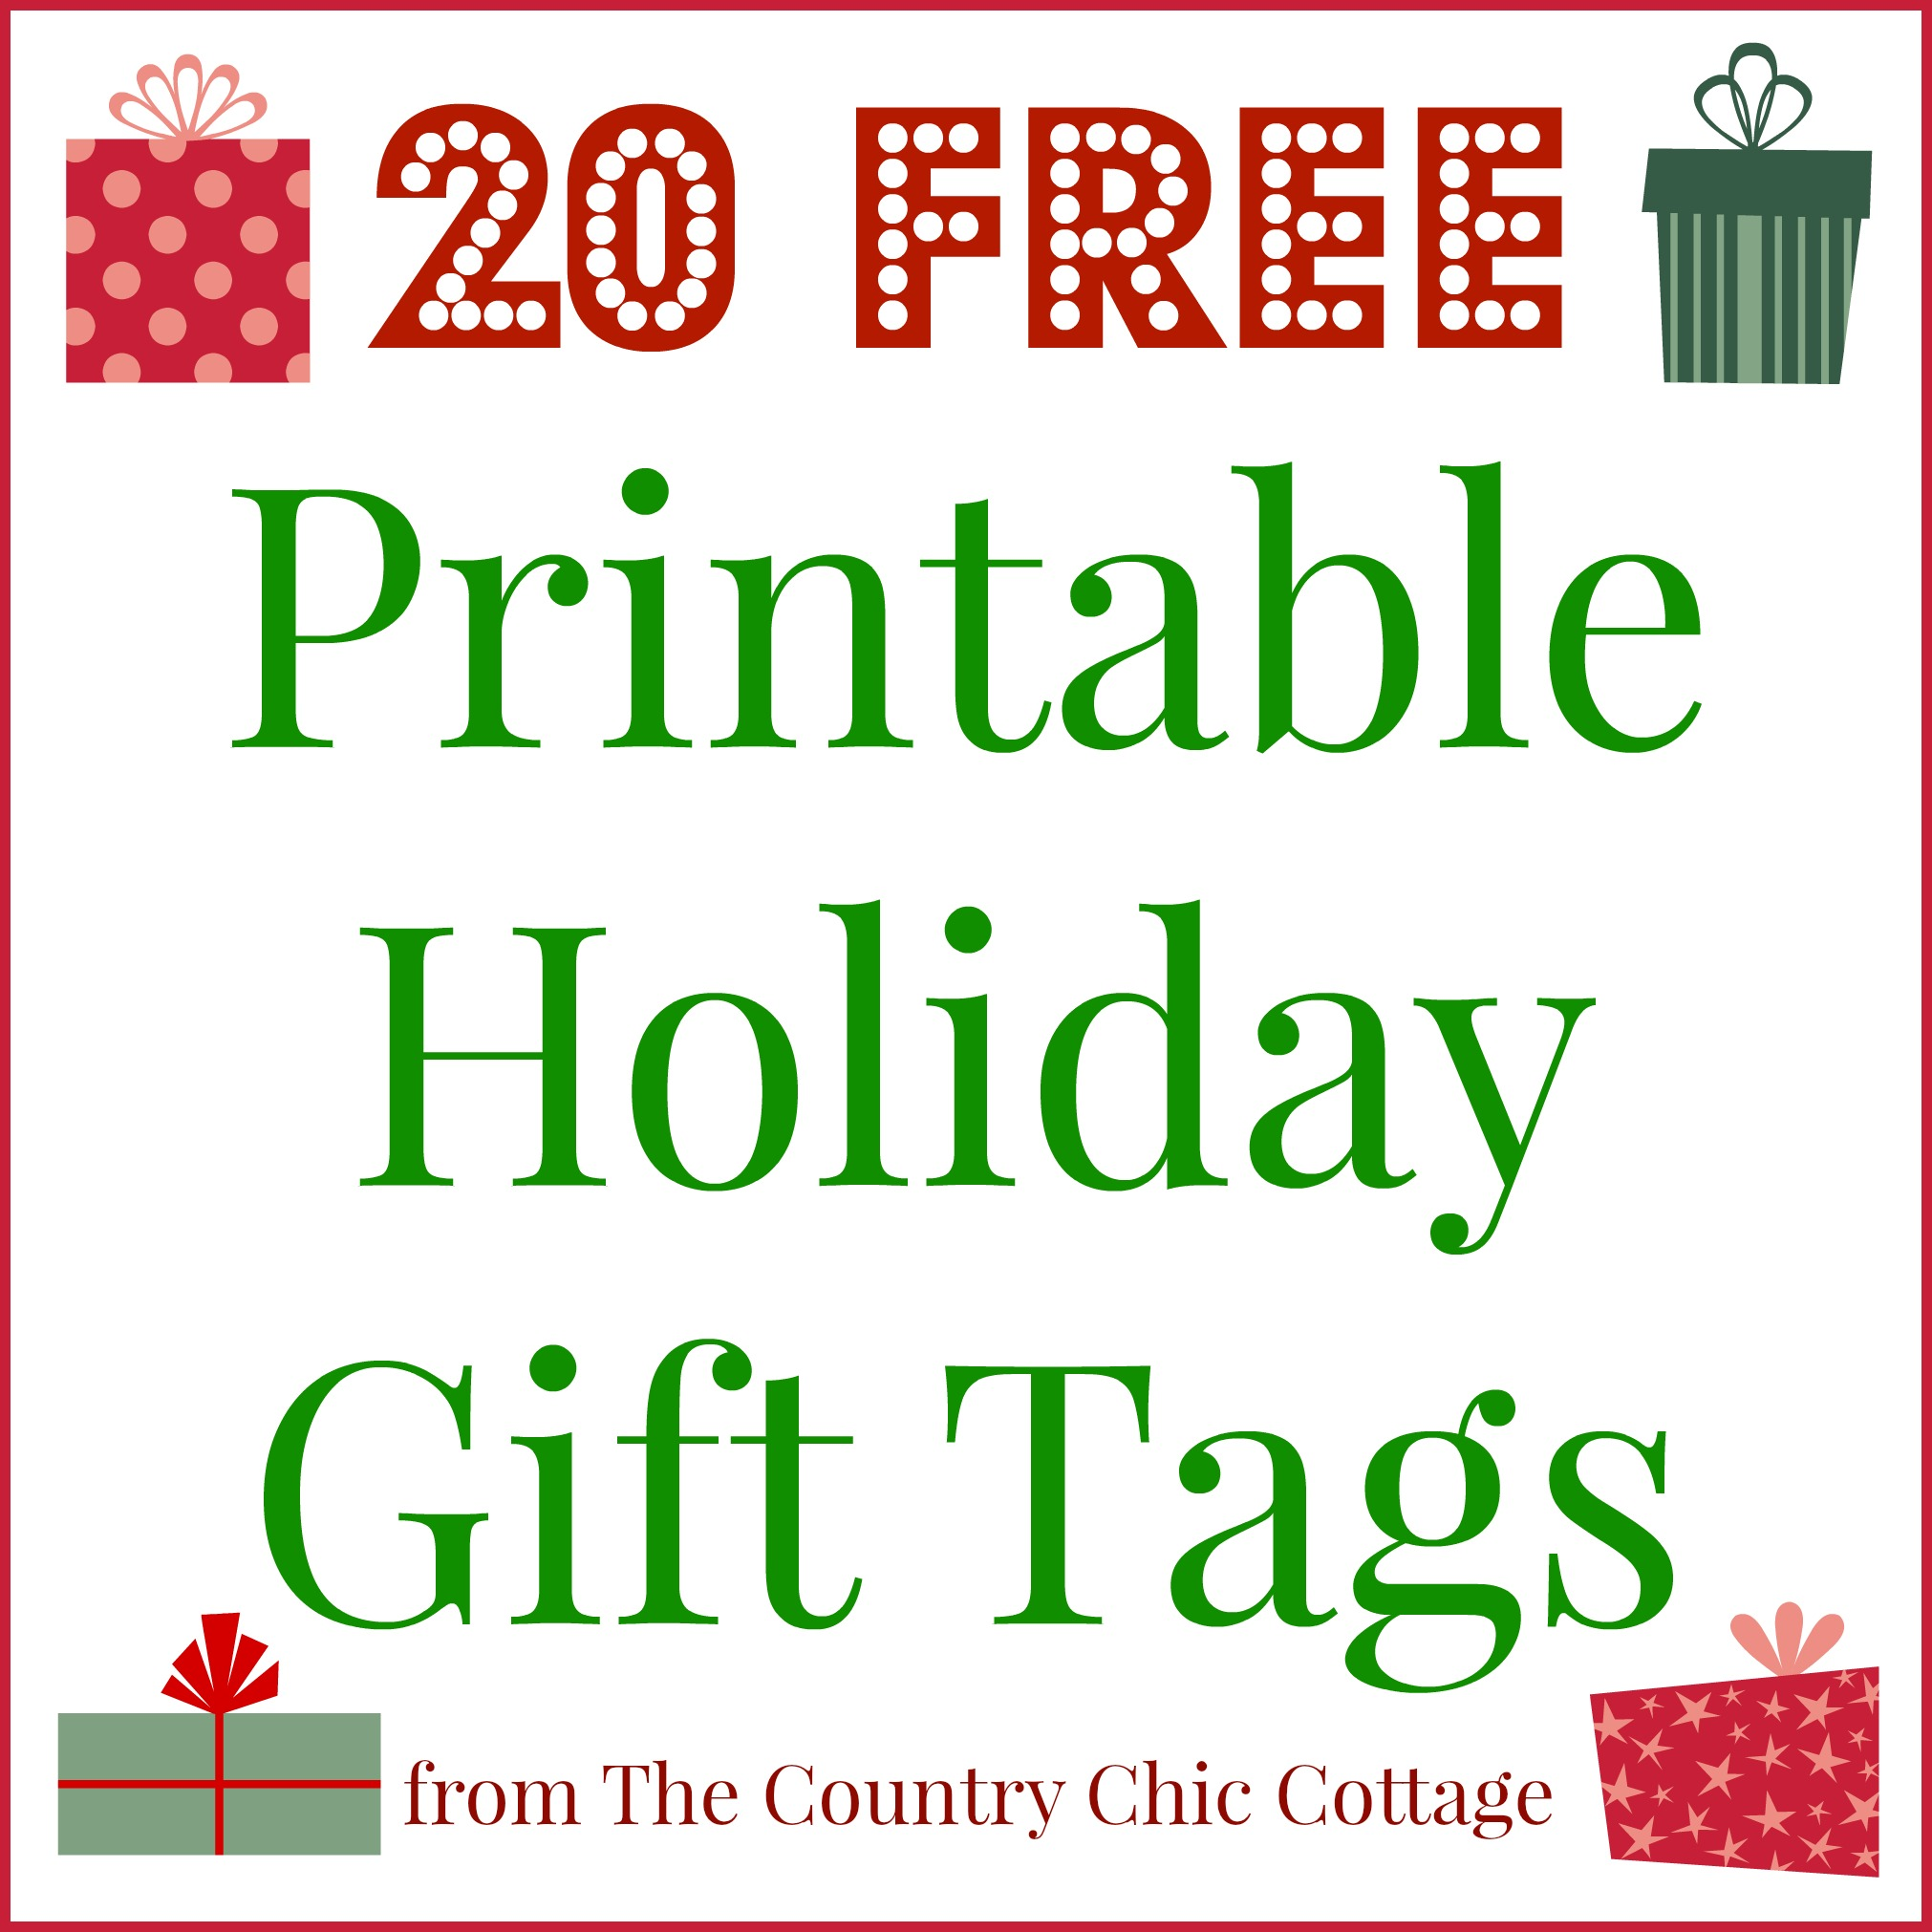 image about Christmas Tag Free Printable called 20 Printable Vacation Reward Tags (FOR No cost!!) - The Nation